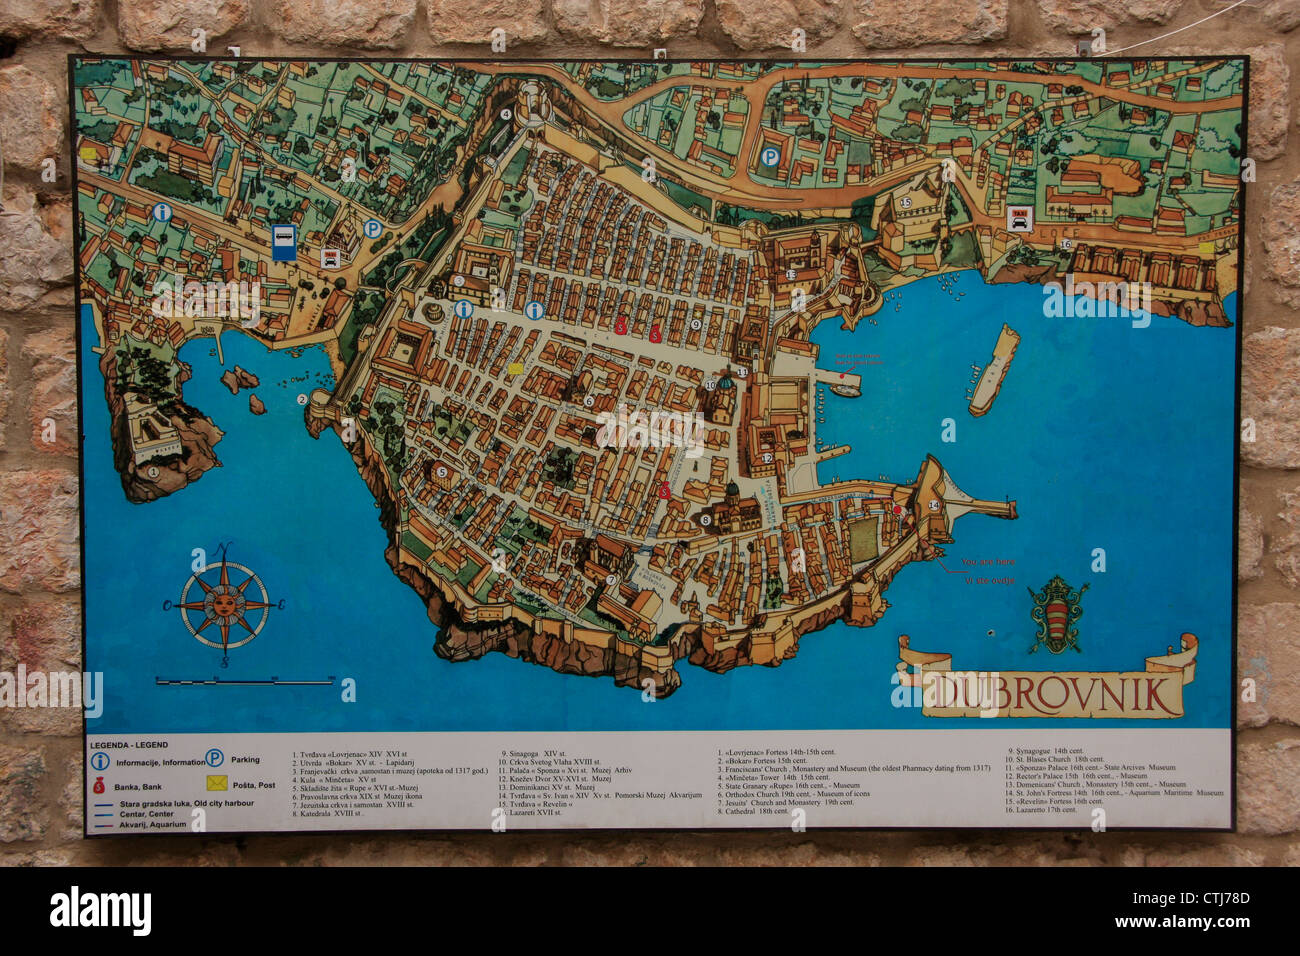 Map of old town of dubrovnik croatia stock photo 49573341 alamy map of old town of dubrovnik croatia gumiabroncs Gallery